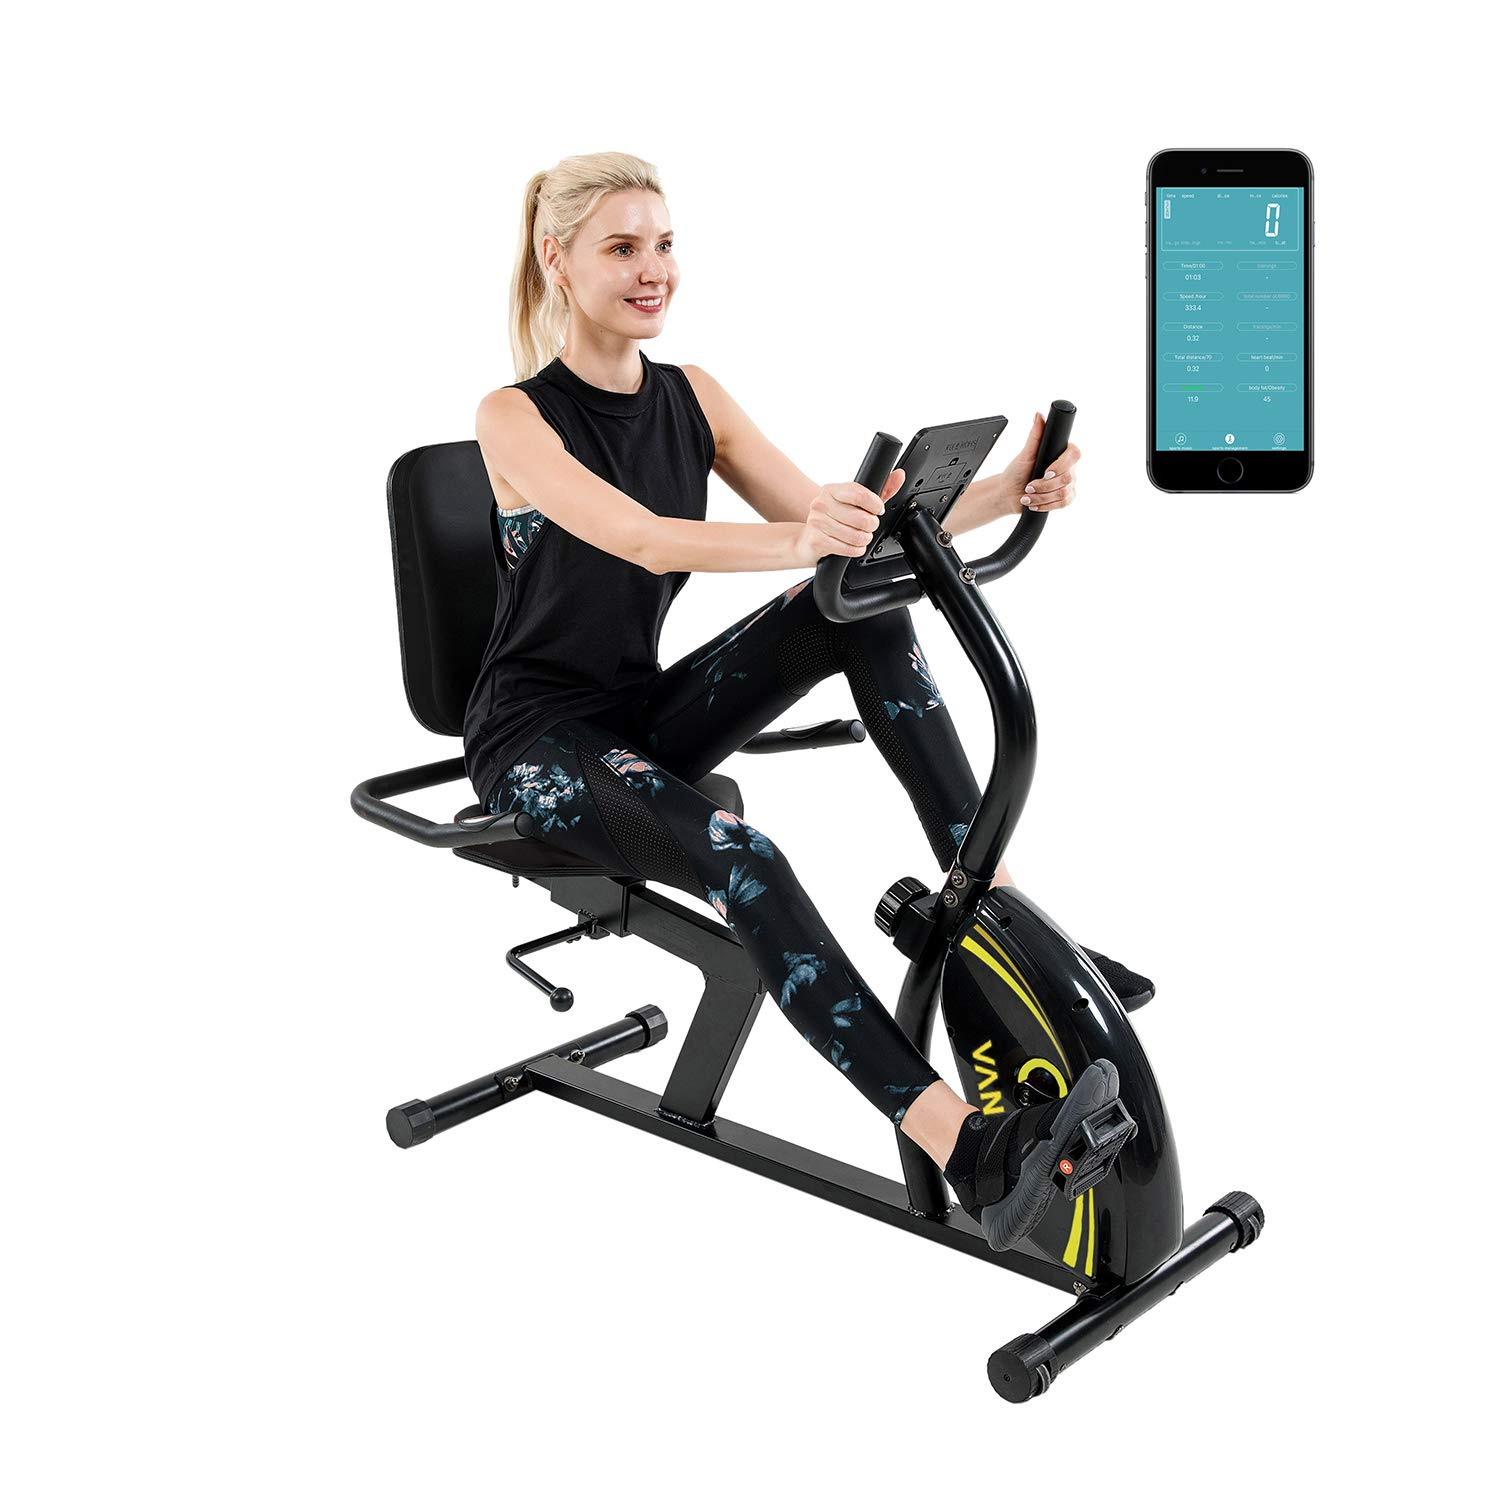 Vanswe Recumbent Exercise Bike 16 Levels Magnetic Tension Resistance 380 lbs. Stationary Bike with Adjustable Seat, Transport Wheels and Bluetooth Connectivity for Workout and Physical Therapy by Vanswe